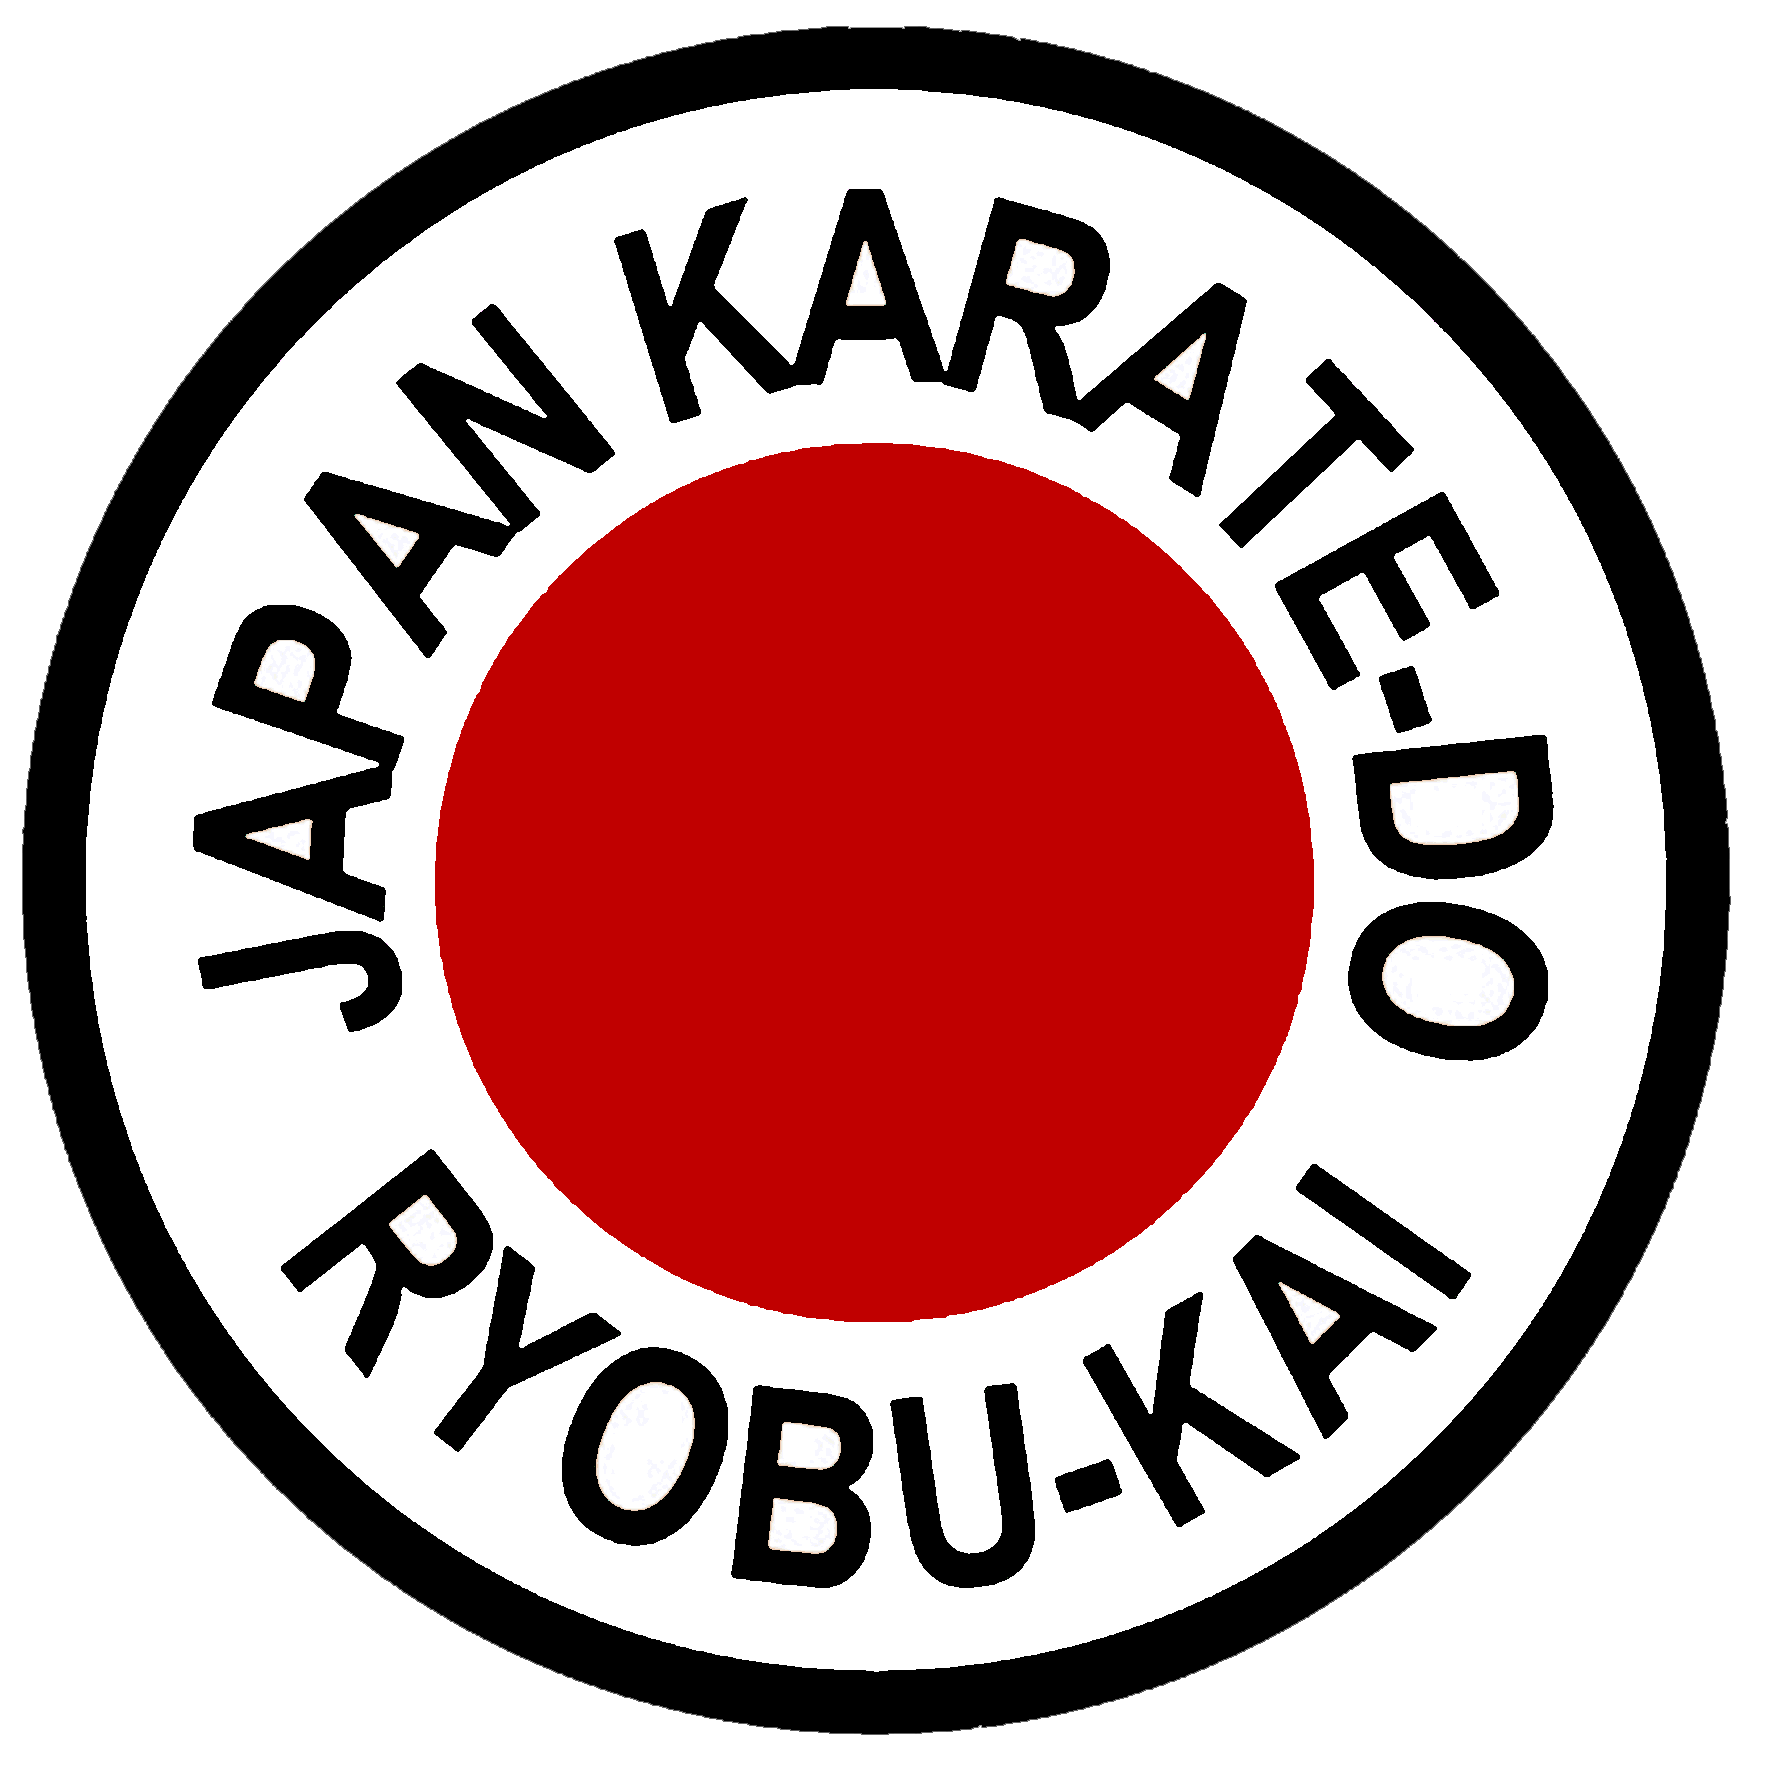 Karate Logo File:logo For Japan Karate-do